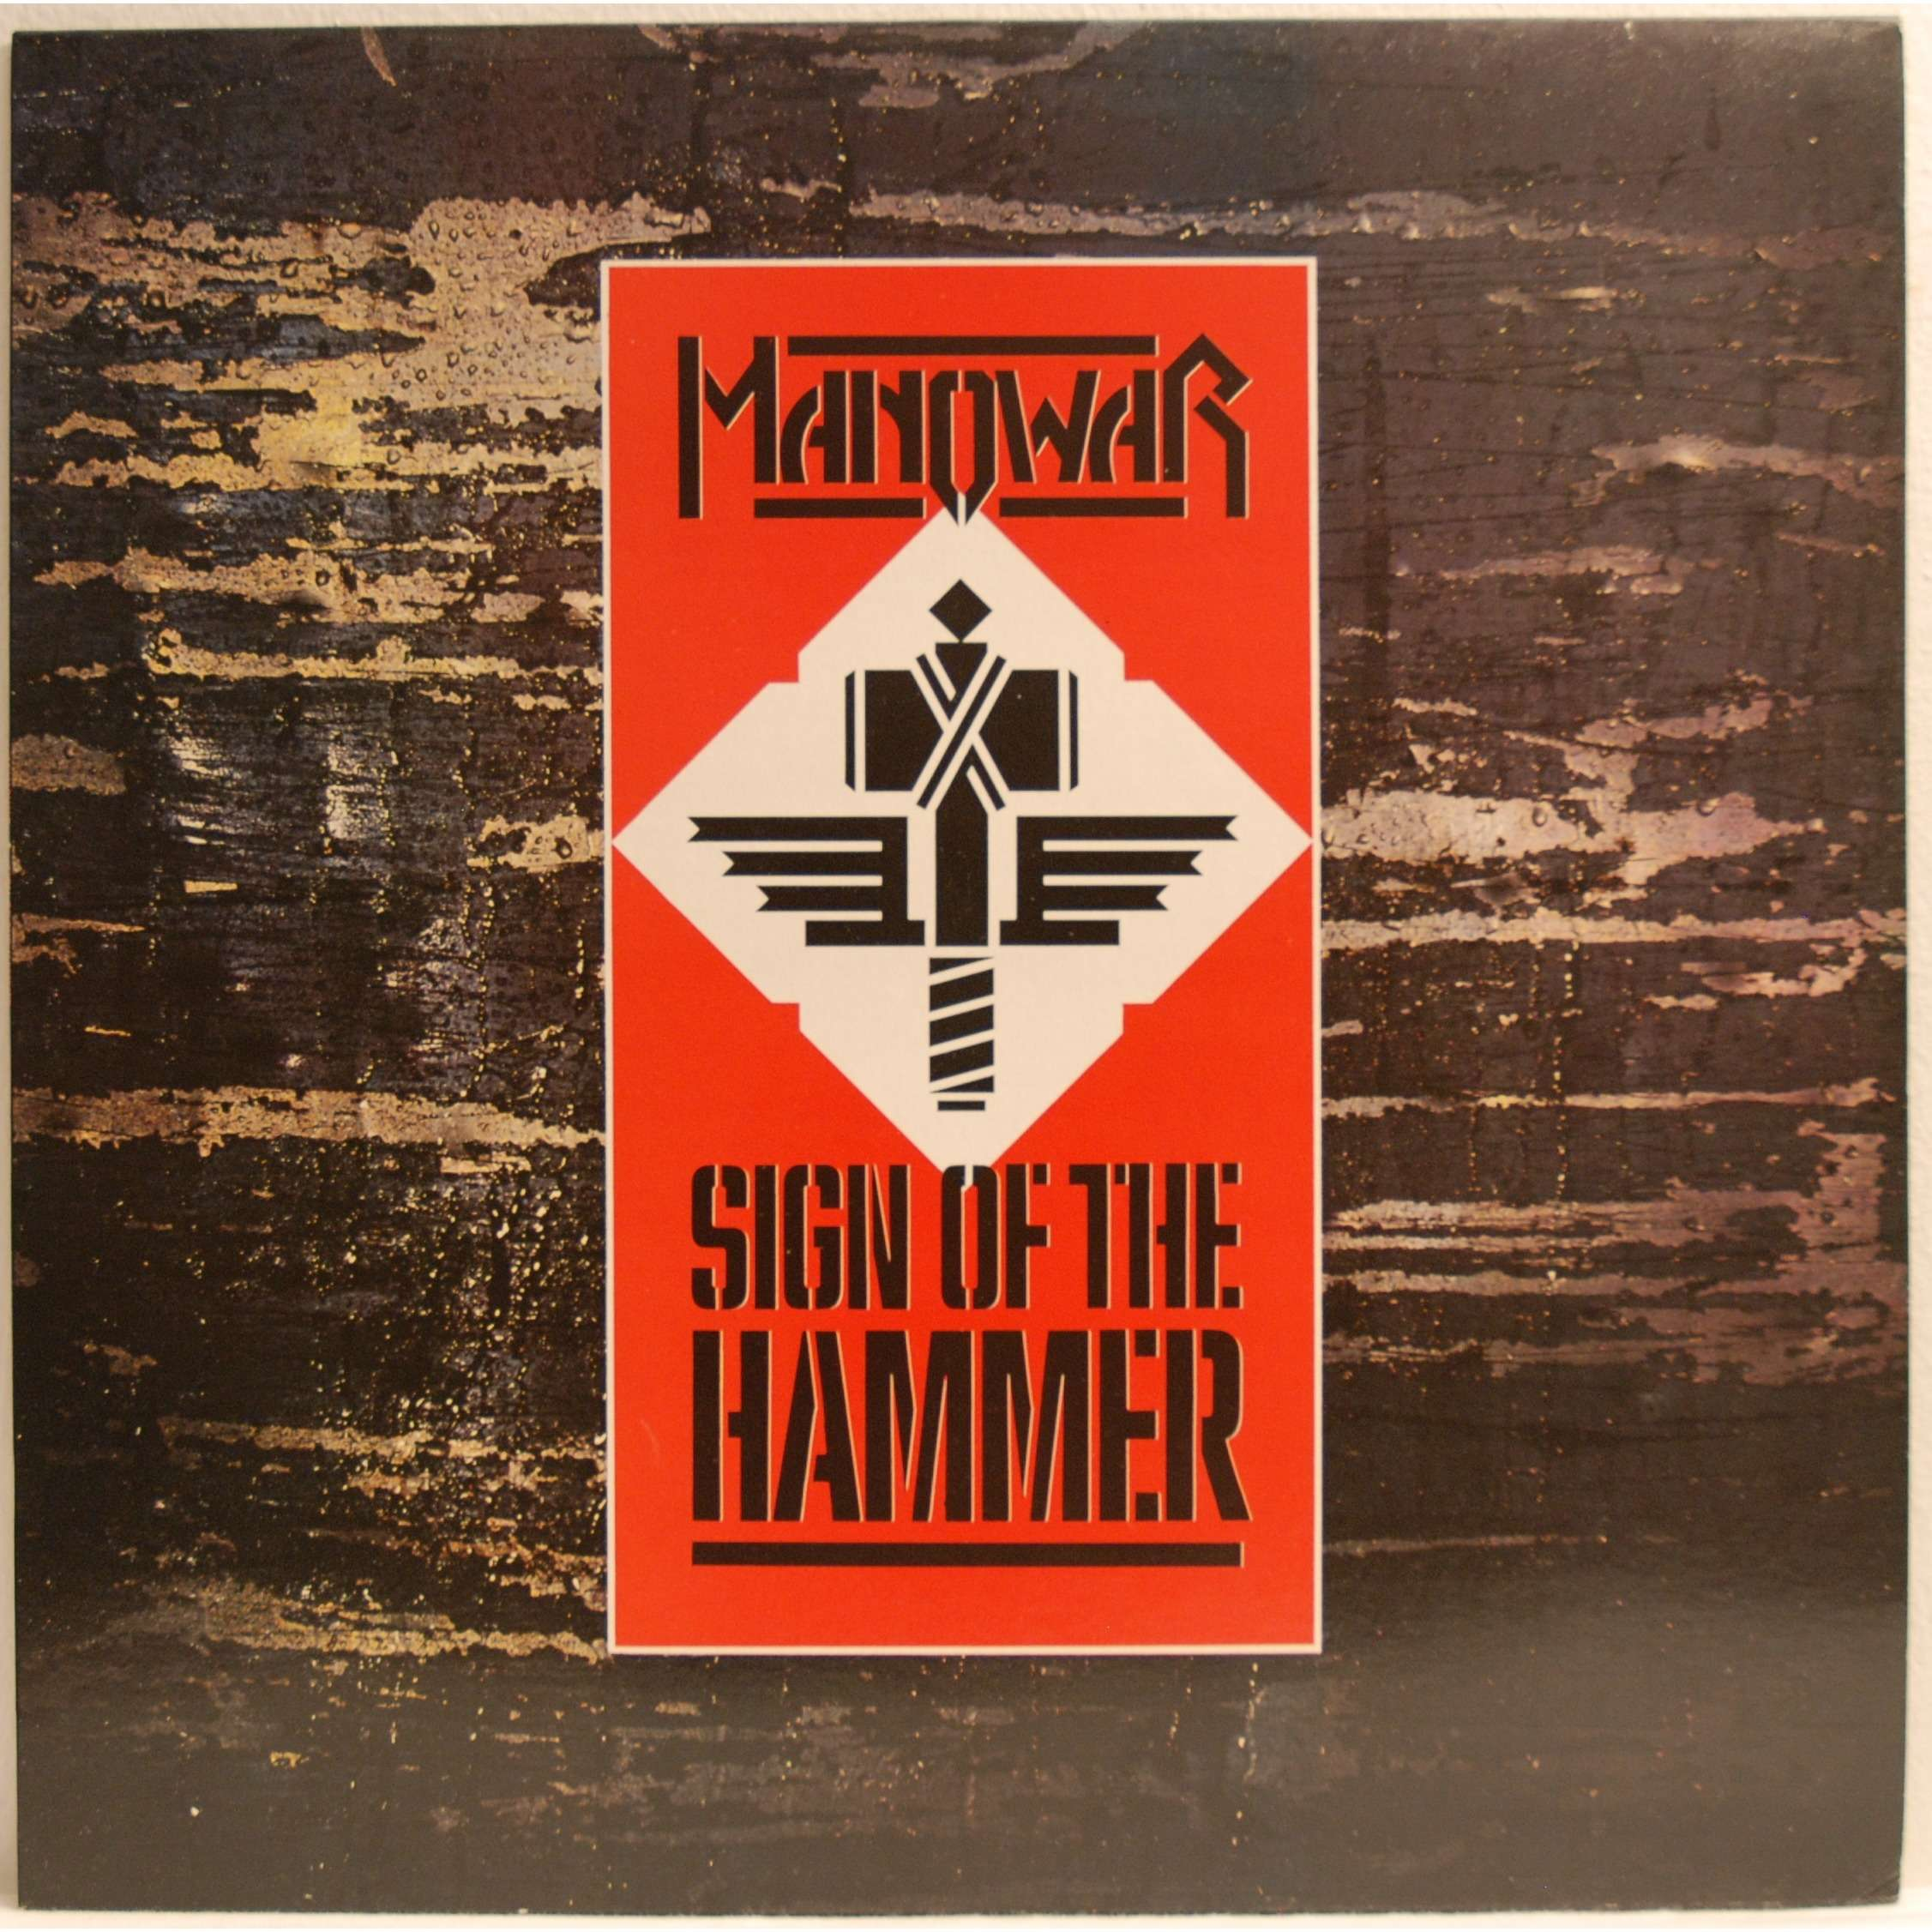 Manowar - Sign Of The Hammer EP